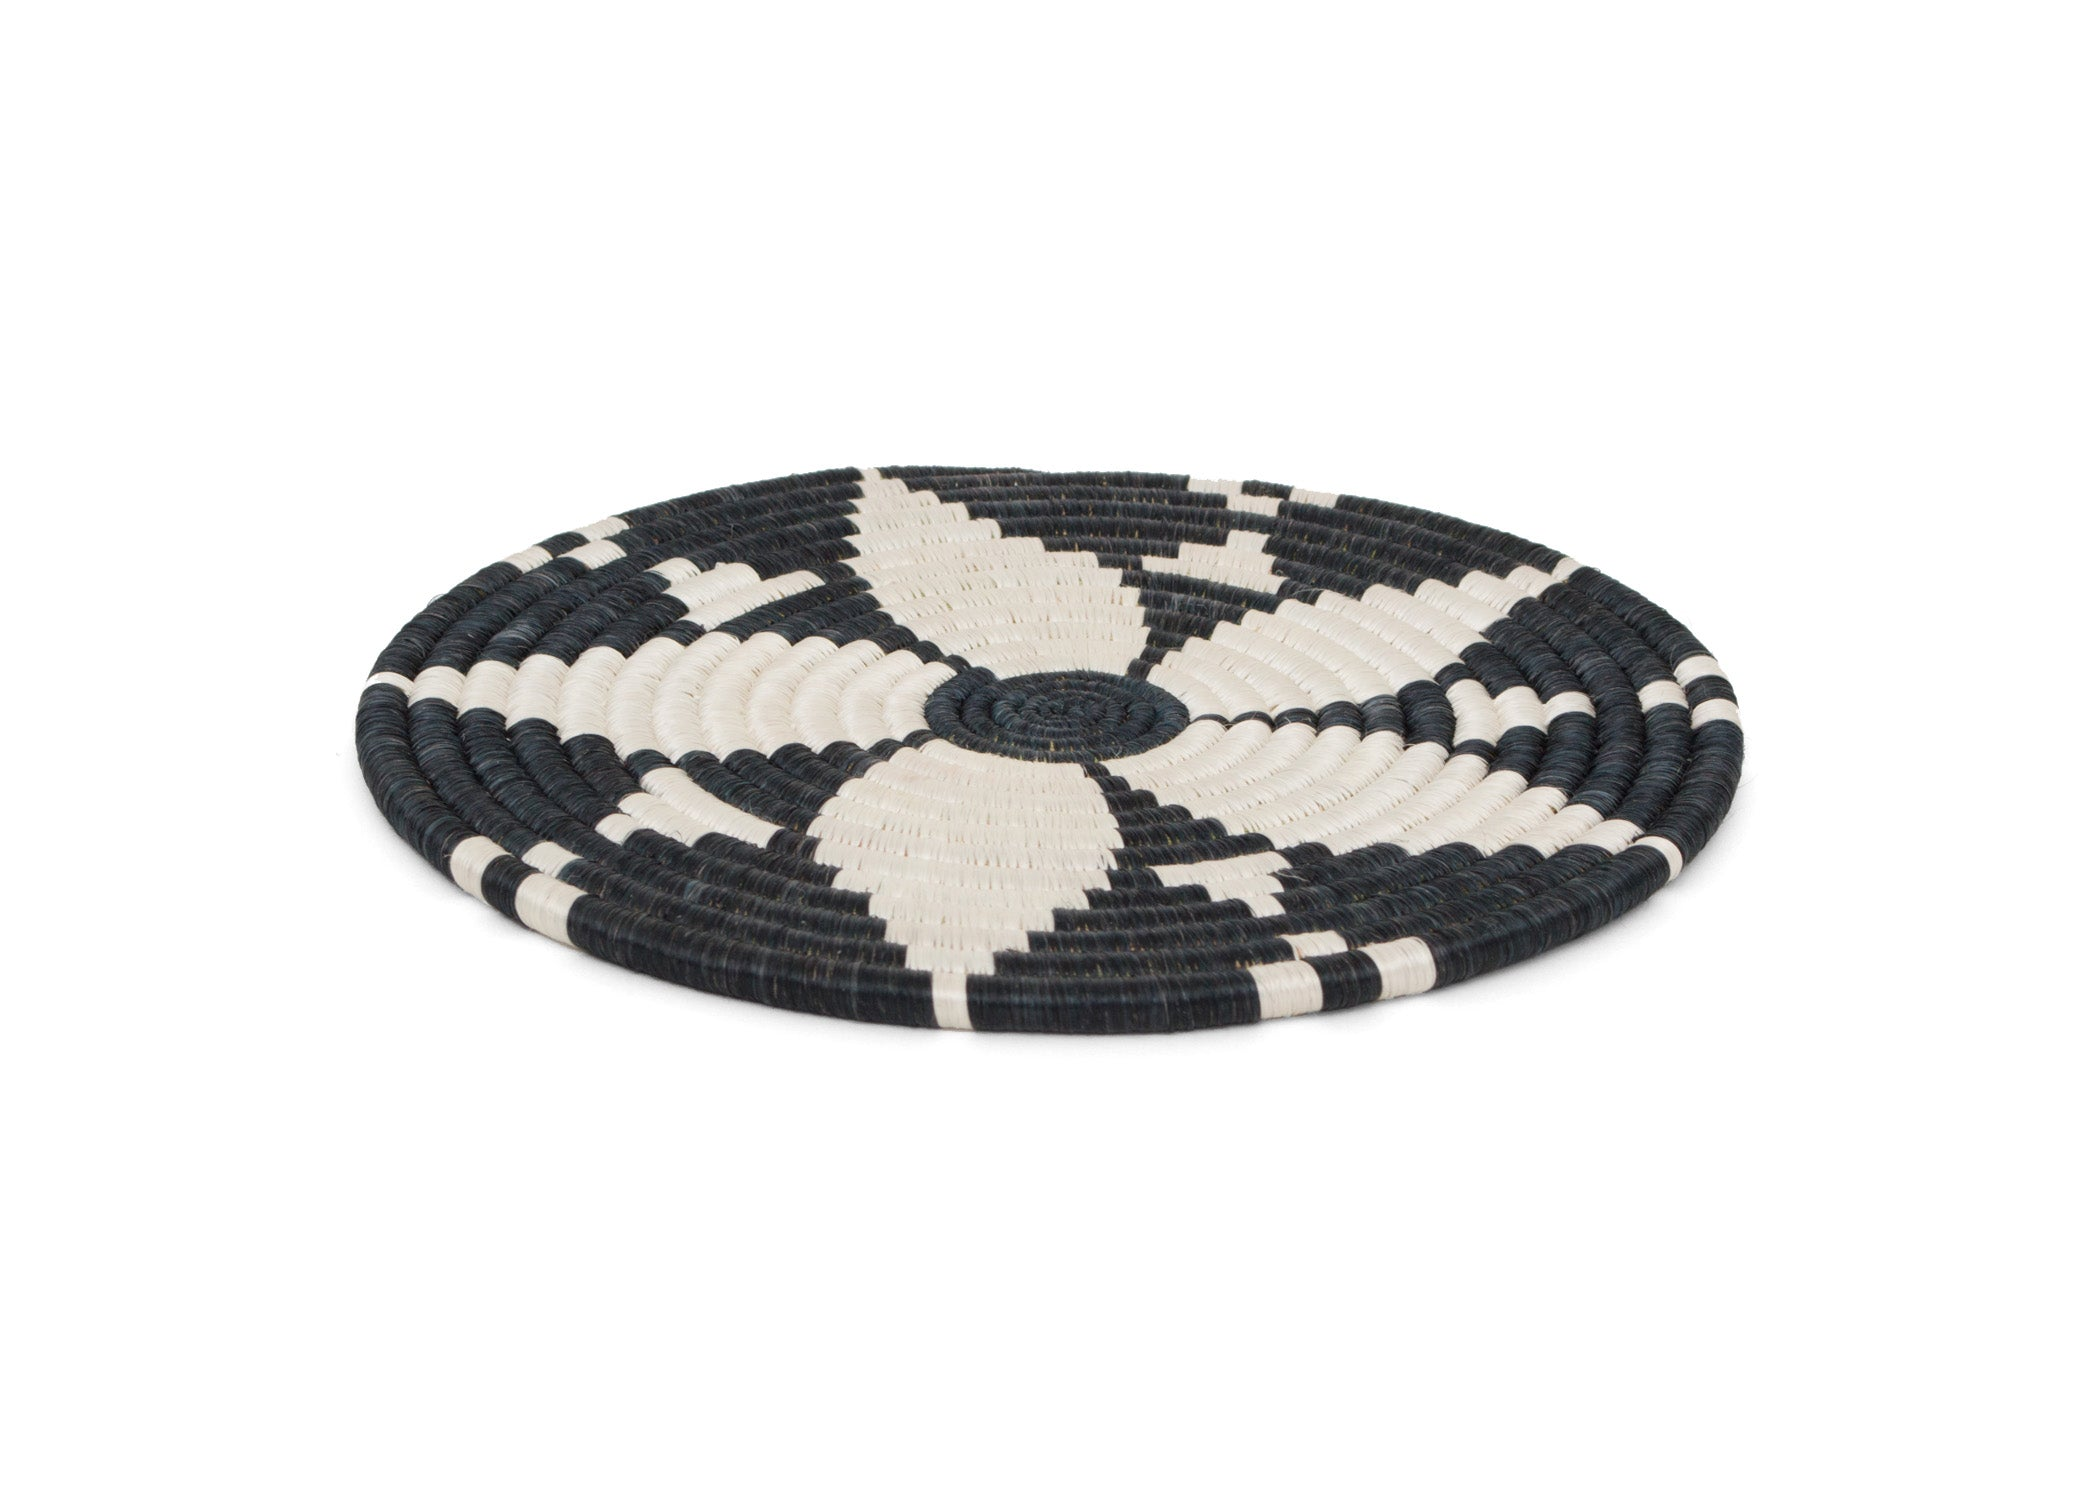 Black + White Hope Trivet - KAZI - Artisan made high quality home decor and wall art